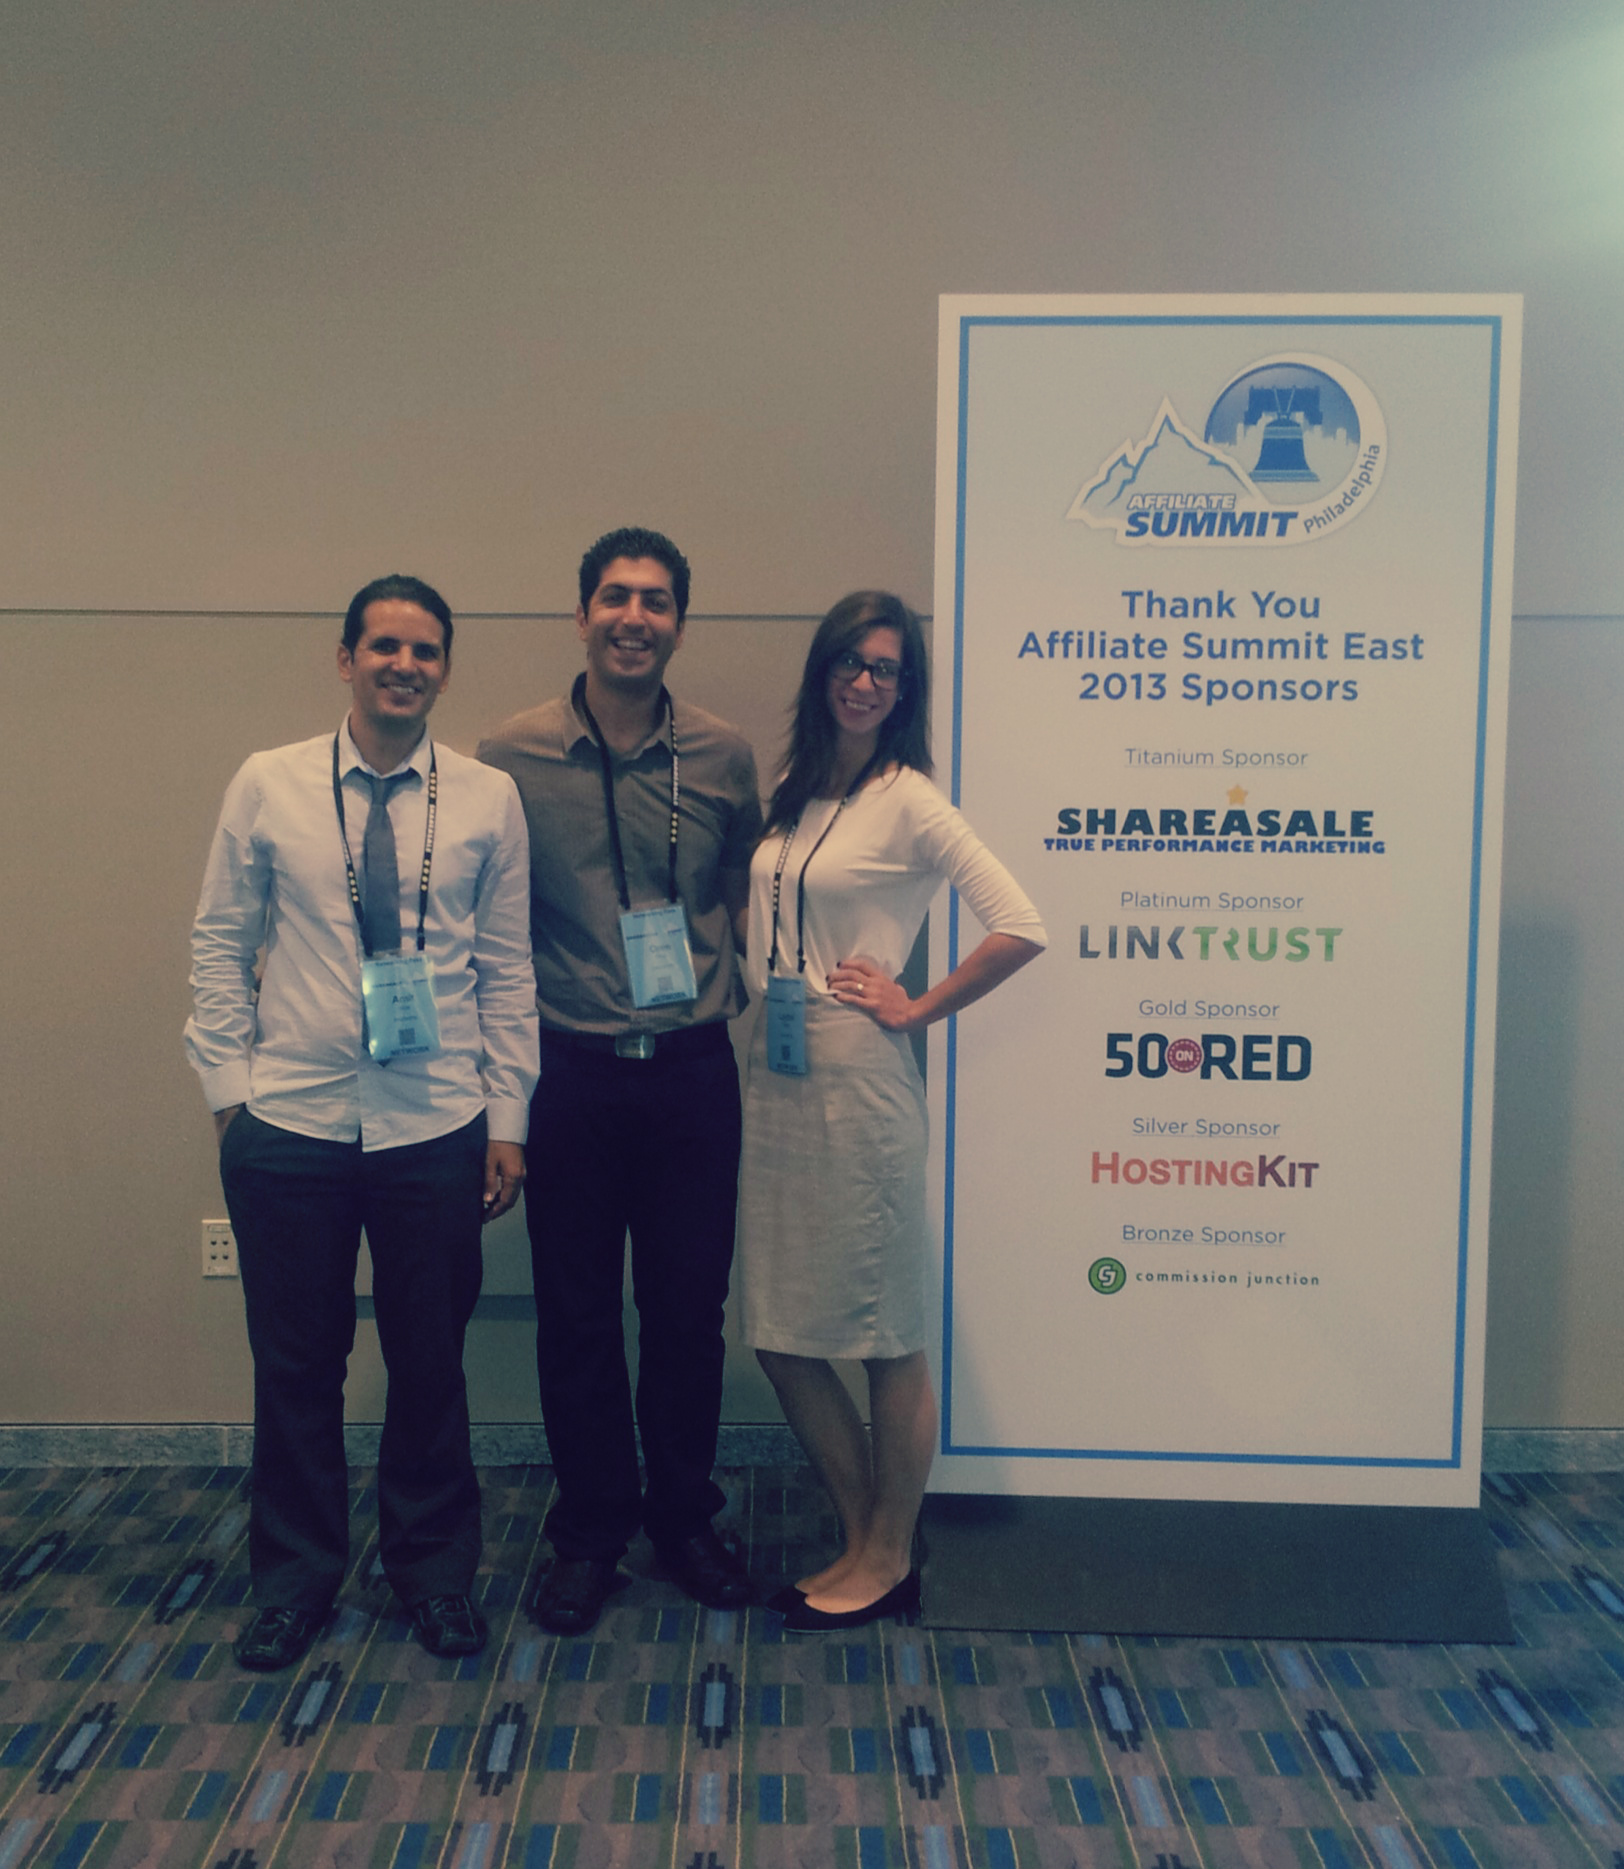 Our team at the affiliate summit